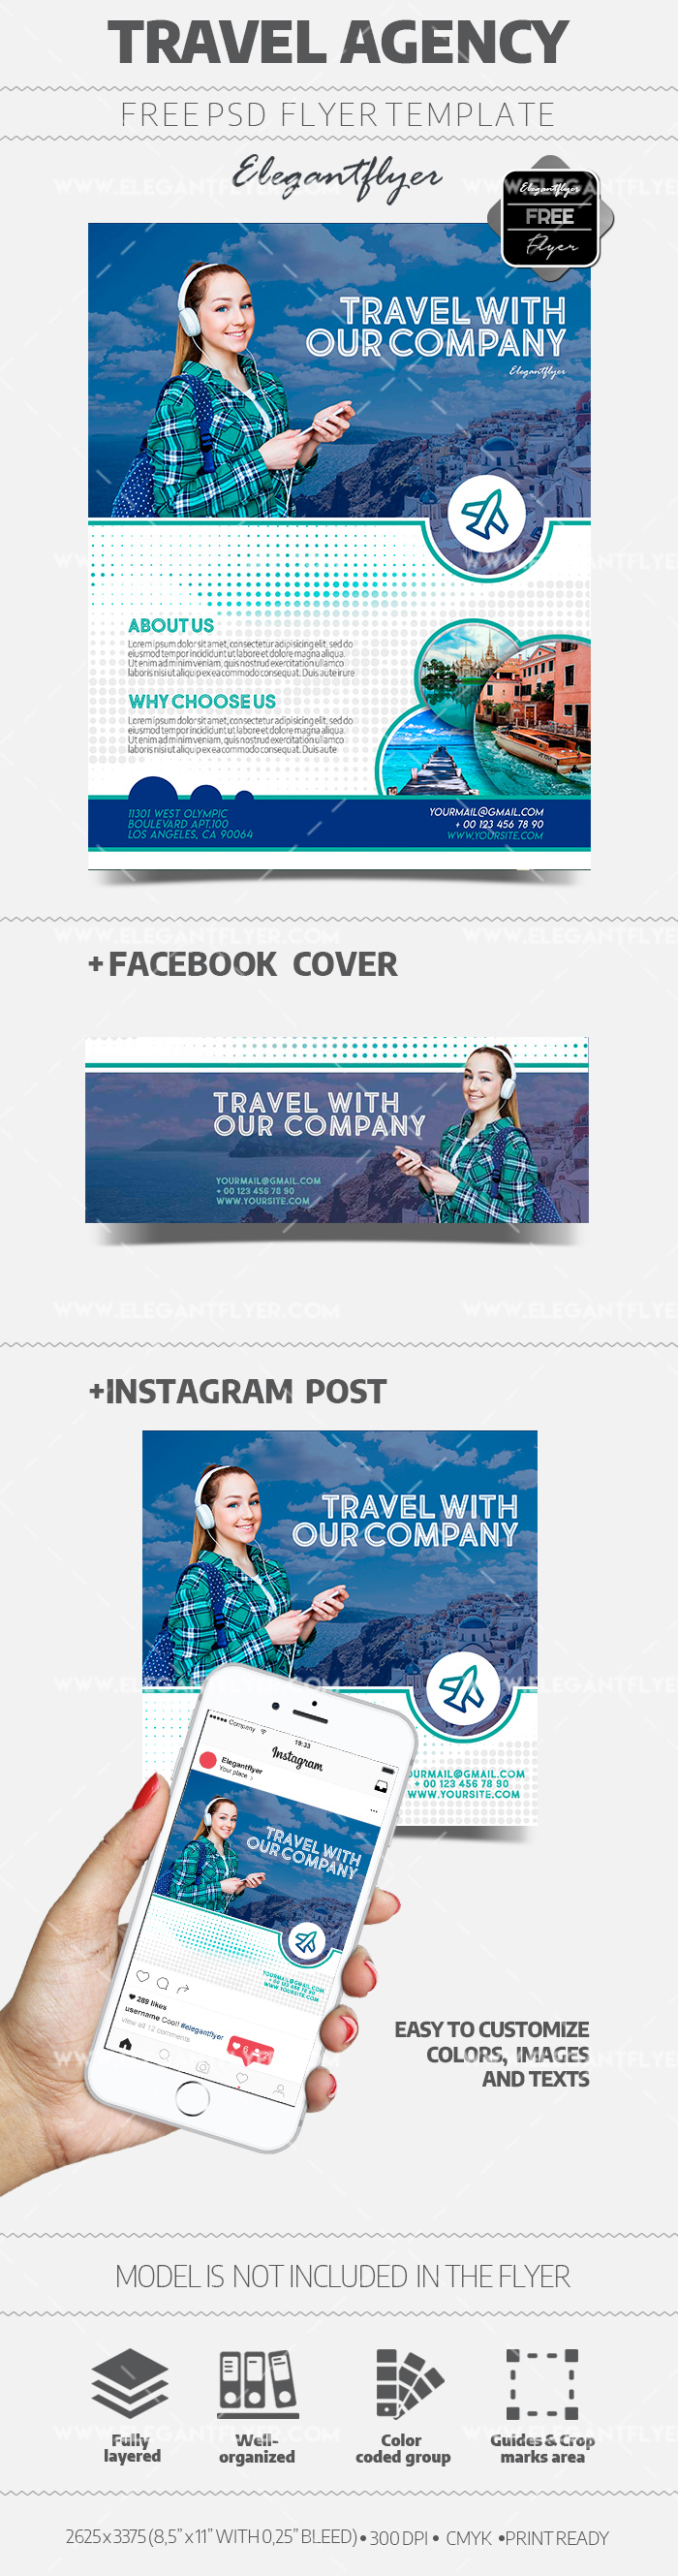 Travel Agency – Free PSD Flyer Template + Facebook Cover + Instagram Post